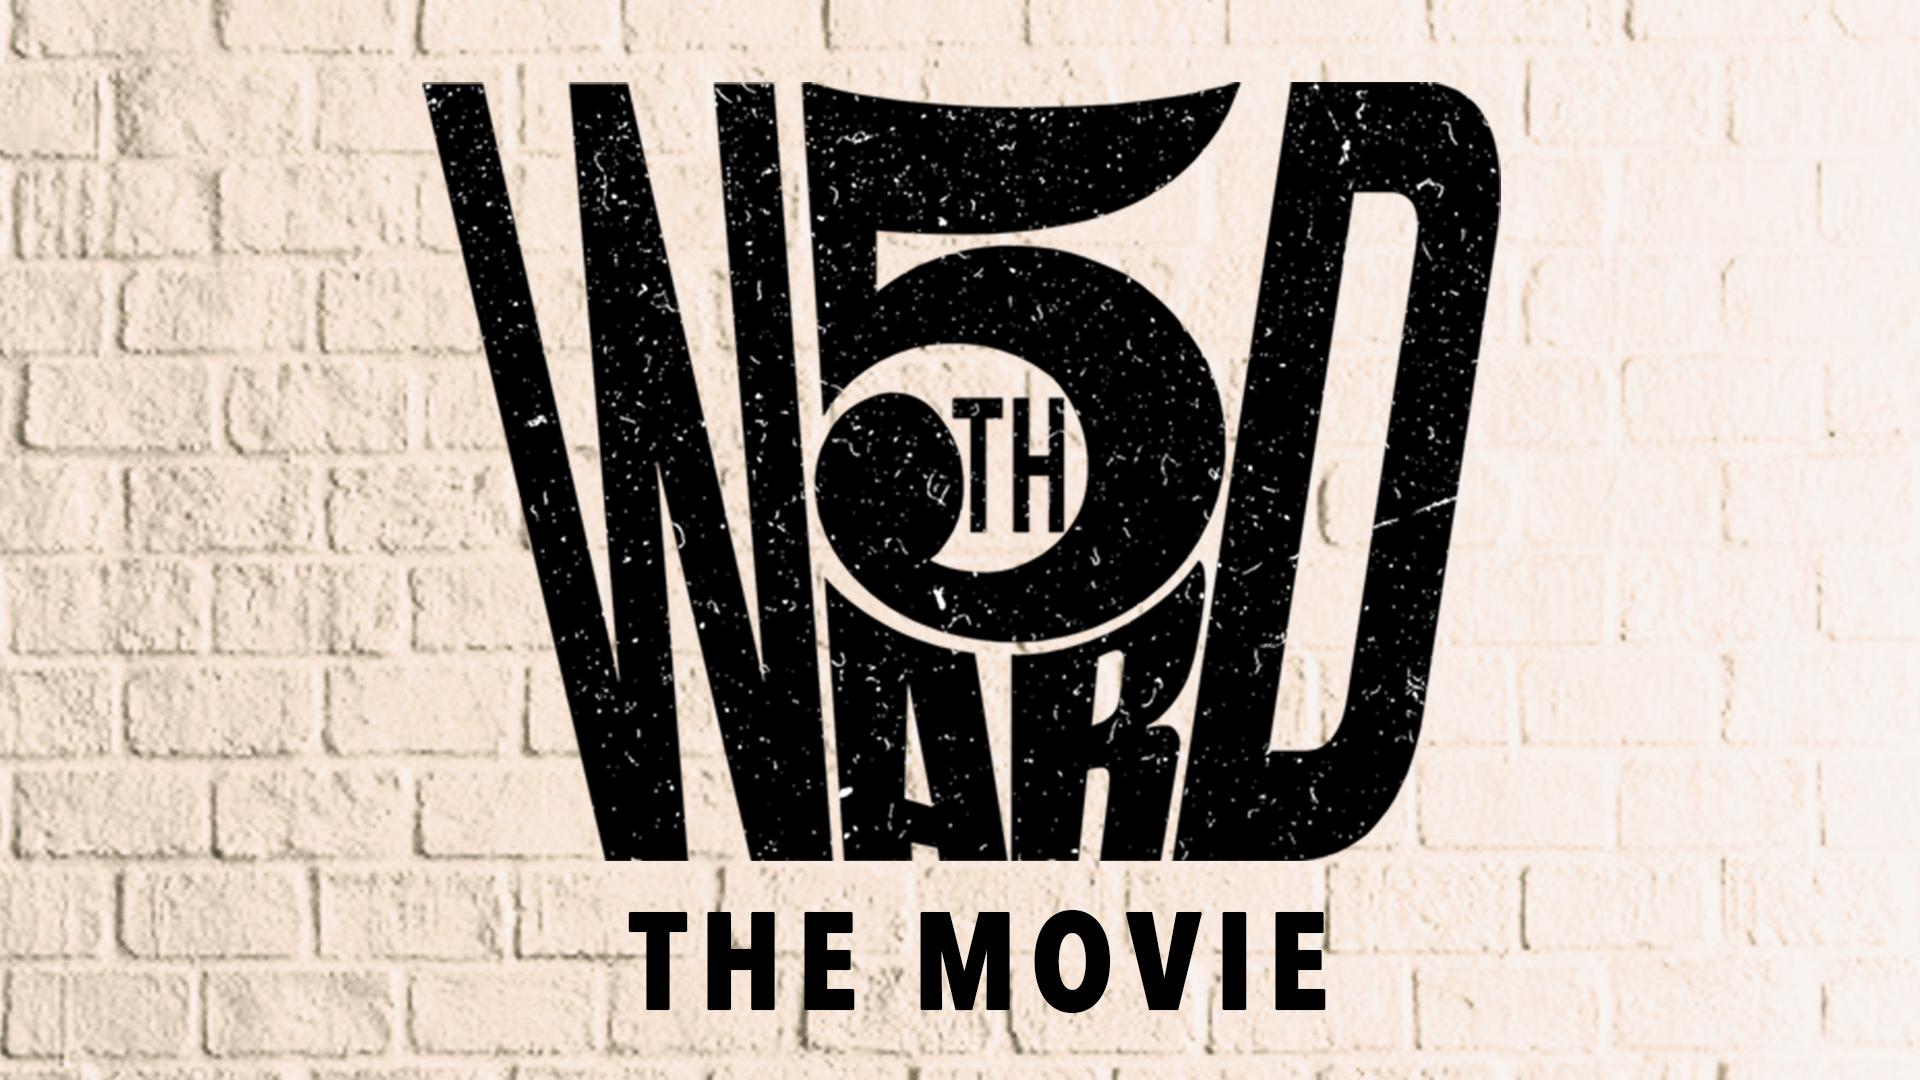 5th Ward: The Movie - New Releases category image